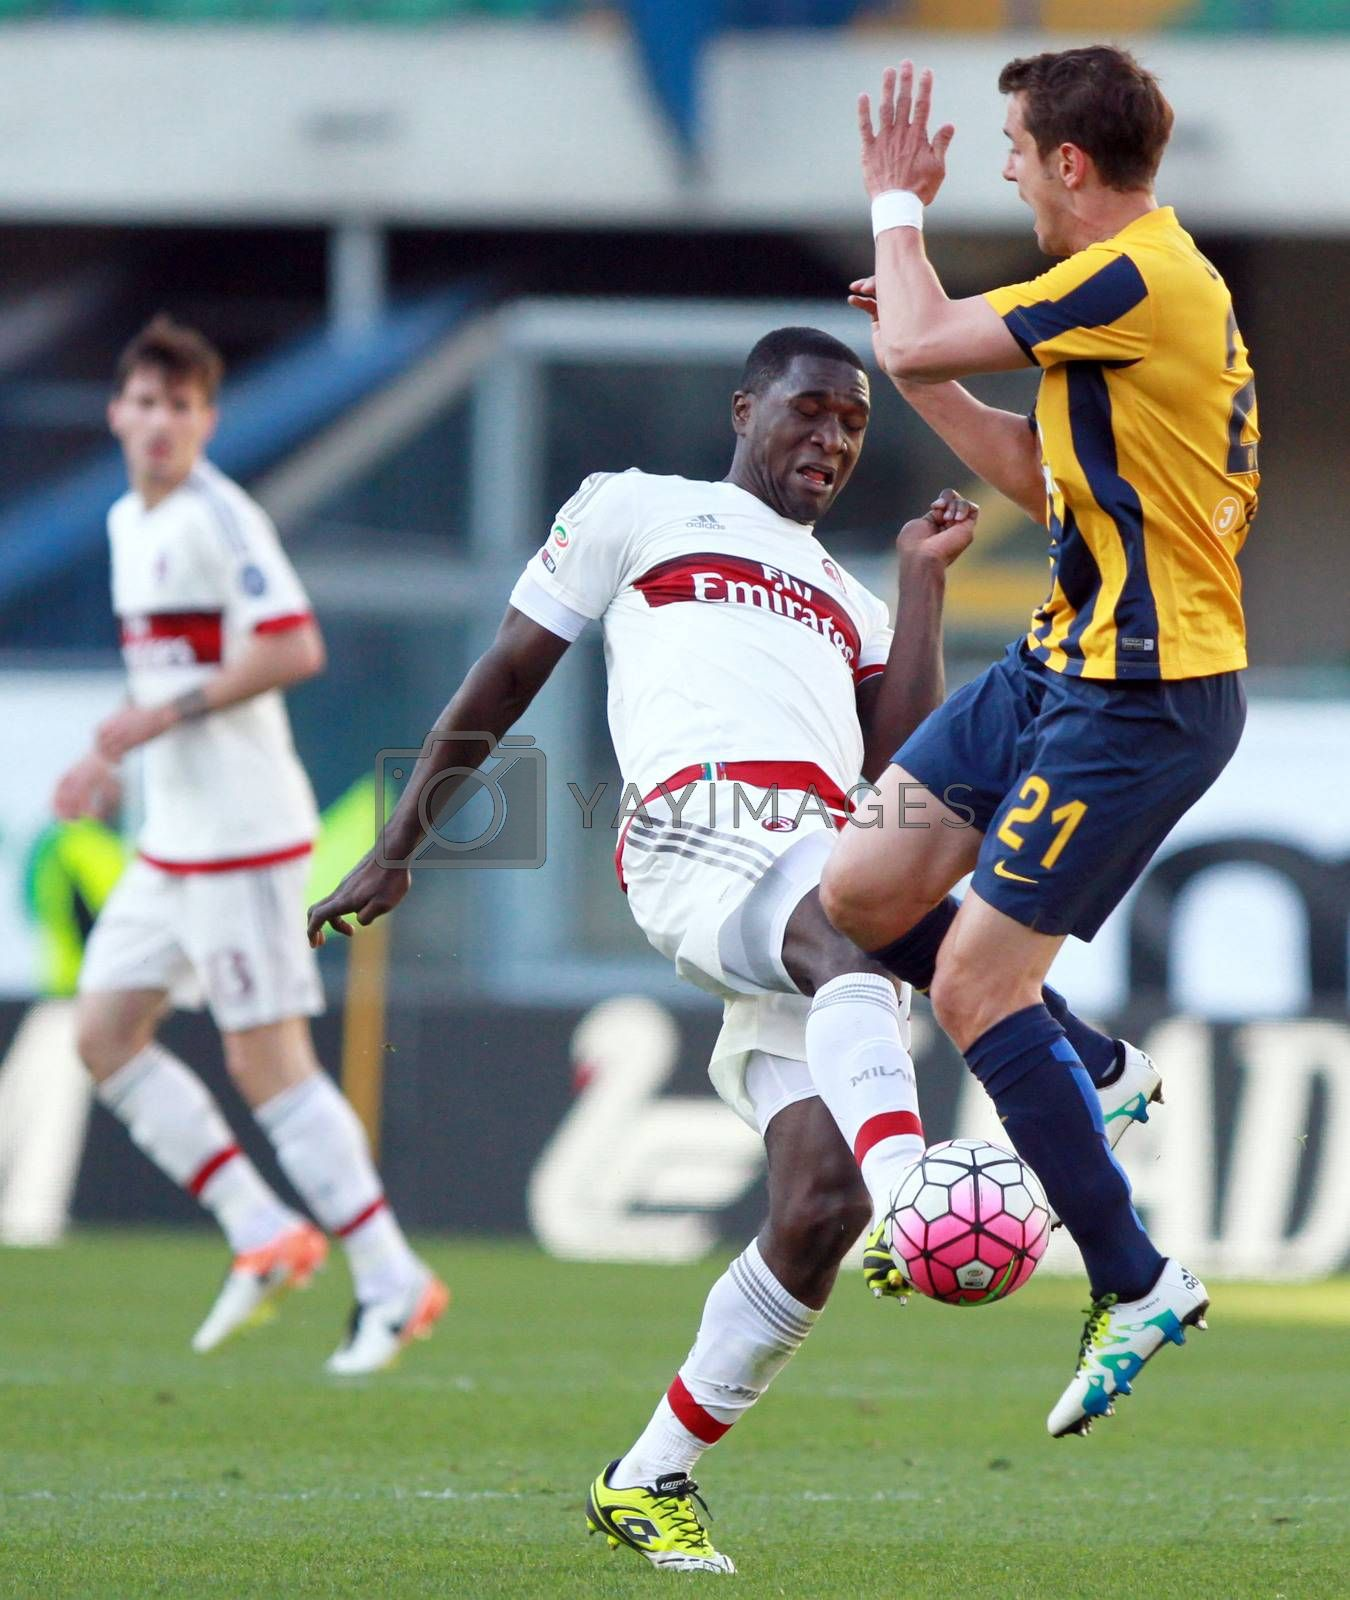 ITALY, Verona: Milan's defender Christian Zapata (L) vies with Hellas Verona's forward Gomez Taleb Juan Ignacio (R) during the Serie A match between FC Hellas Verona v AC Milan on April 25, 2016. Luca Siligardi scored on a late free kick to secure the win for his team in the 95th minute.